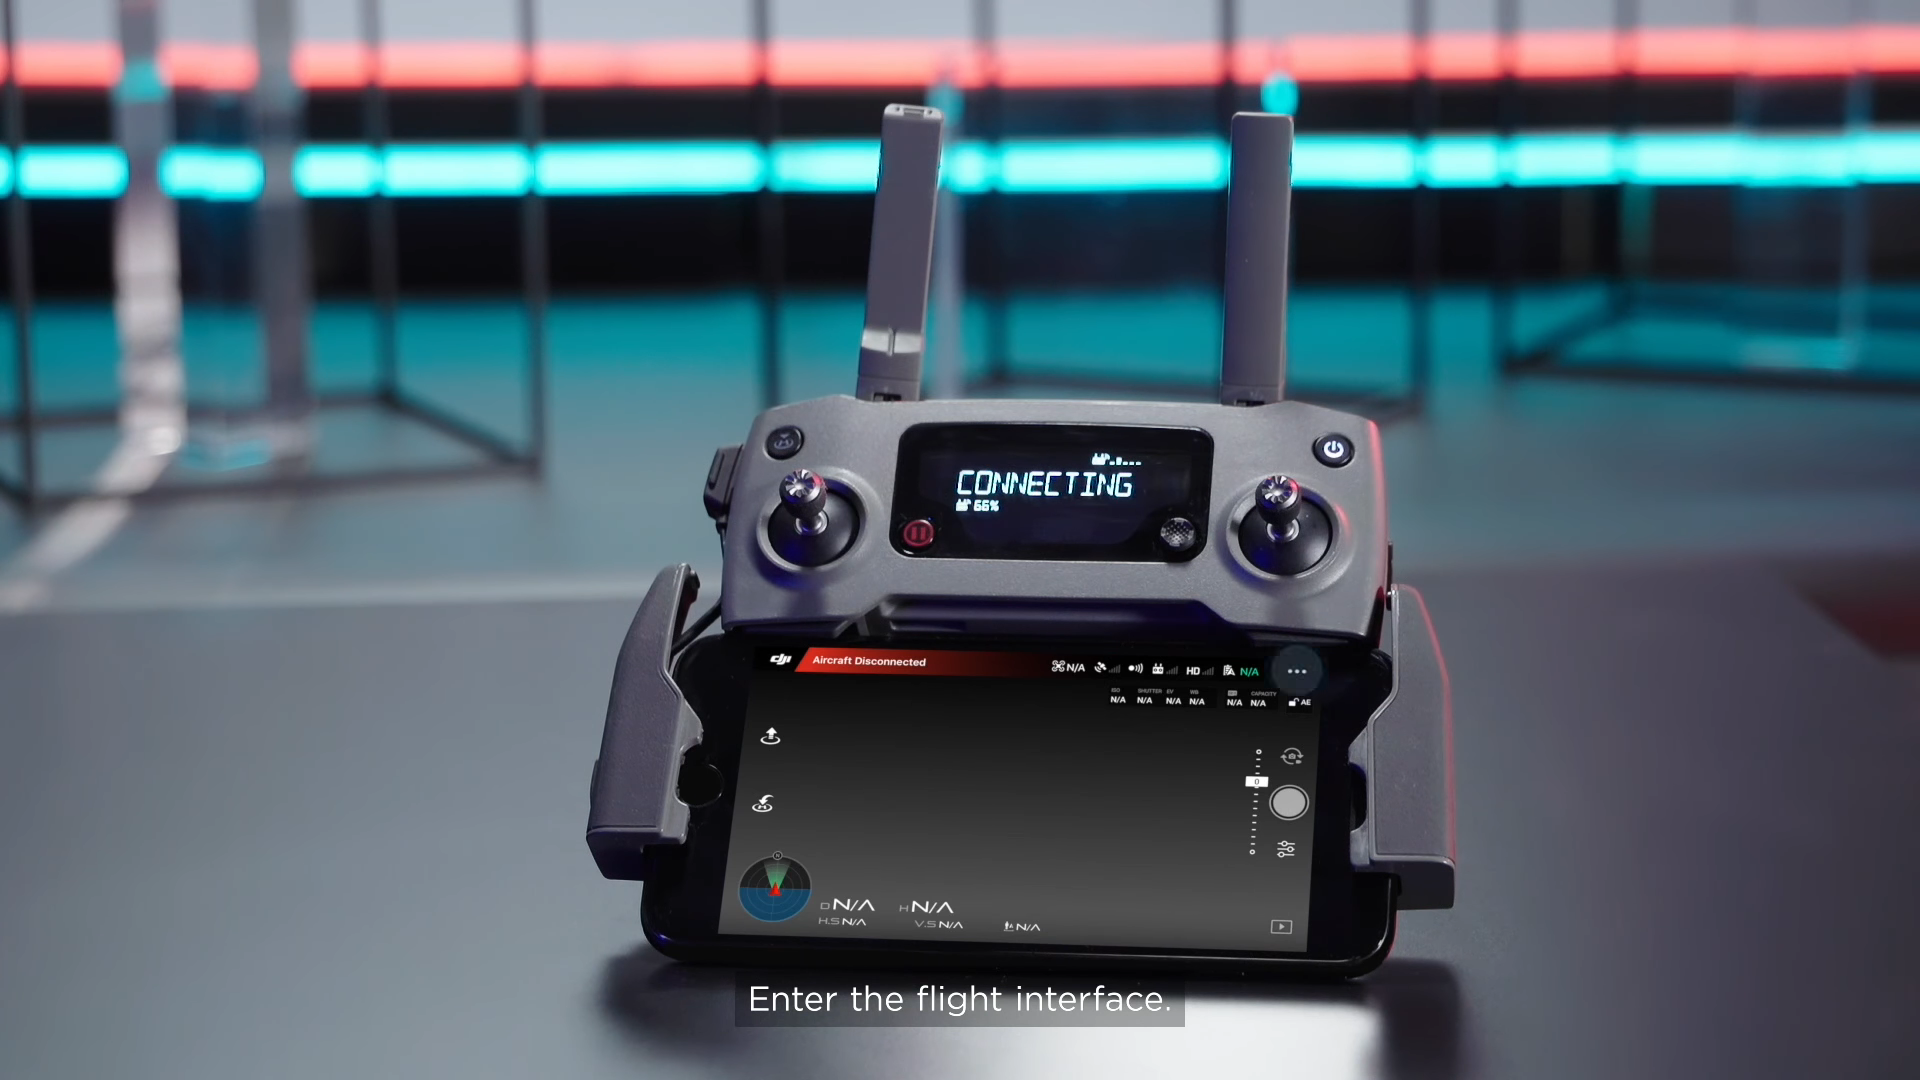 DJI App - Connecting controller to Mavic 2